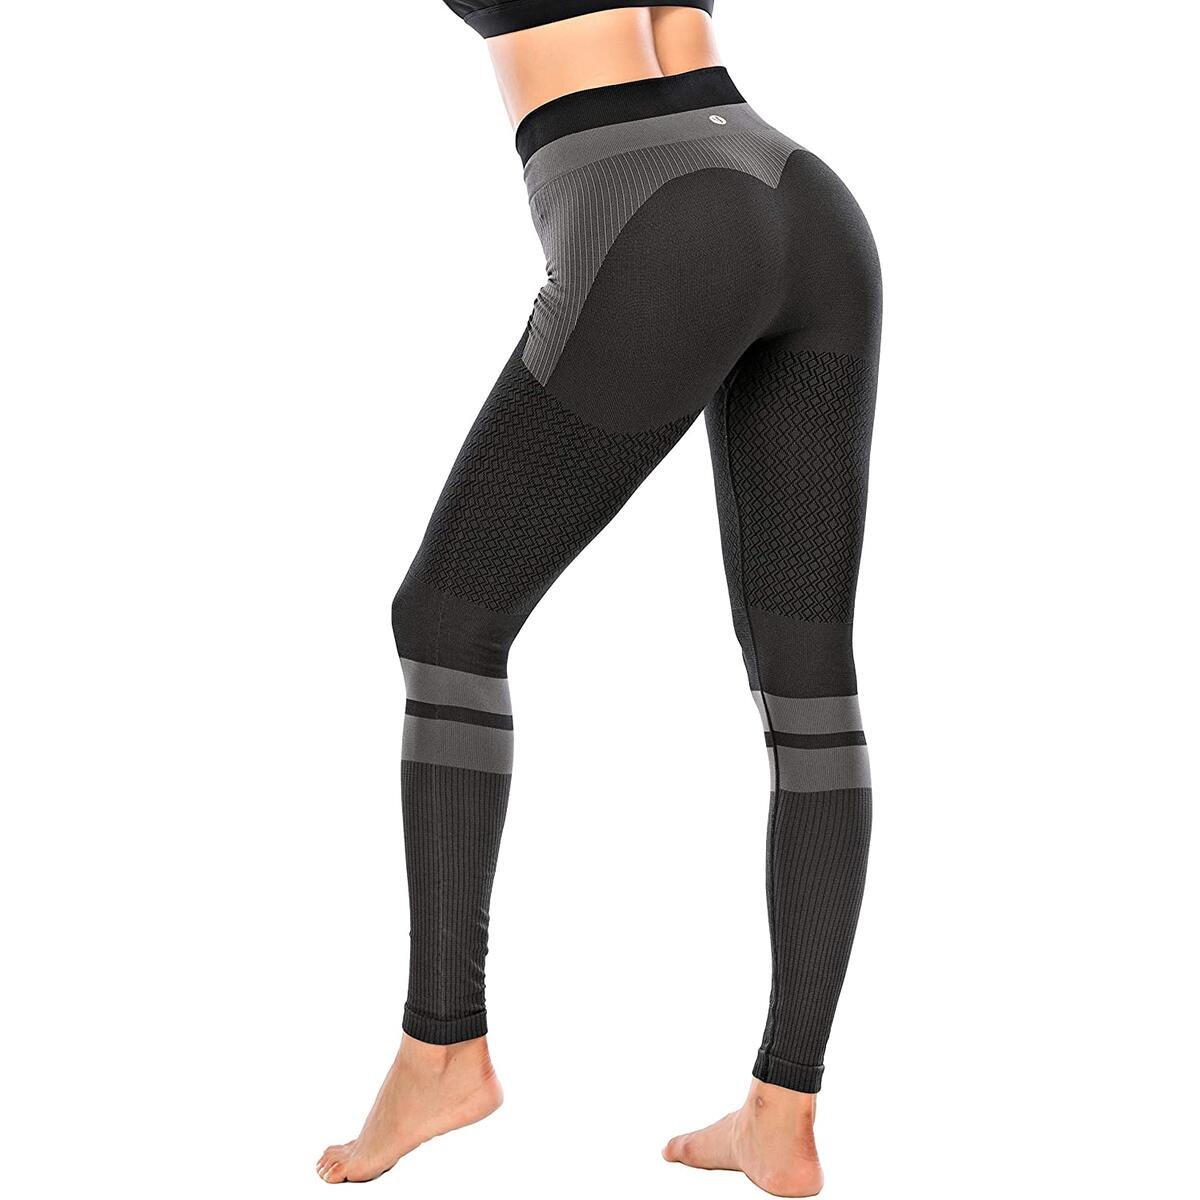 RUNNING GIRL Contrast High Waist Leggings for Women,Butt Lifting Tummy Control Compression Workout Yoga Pants